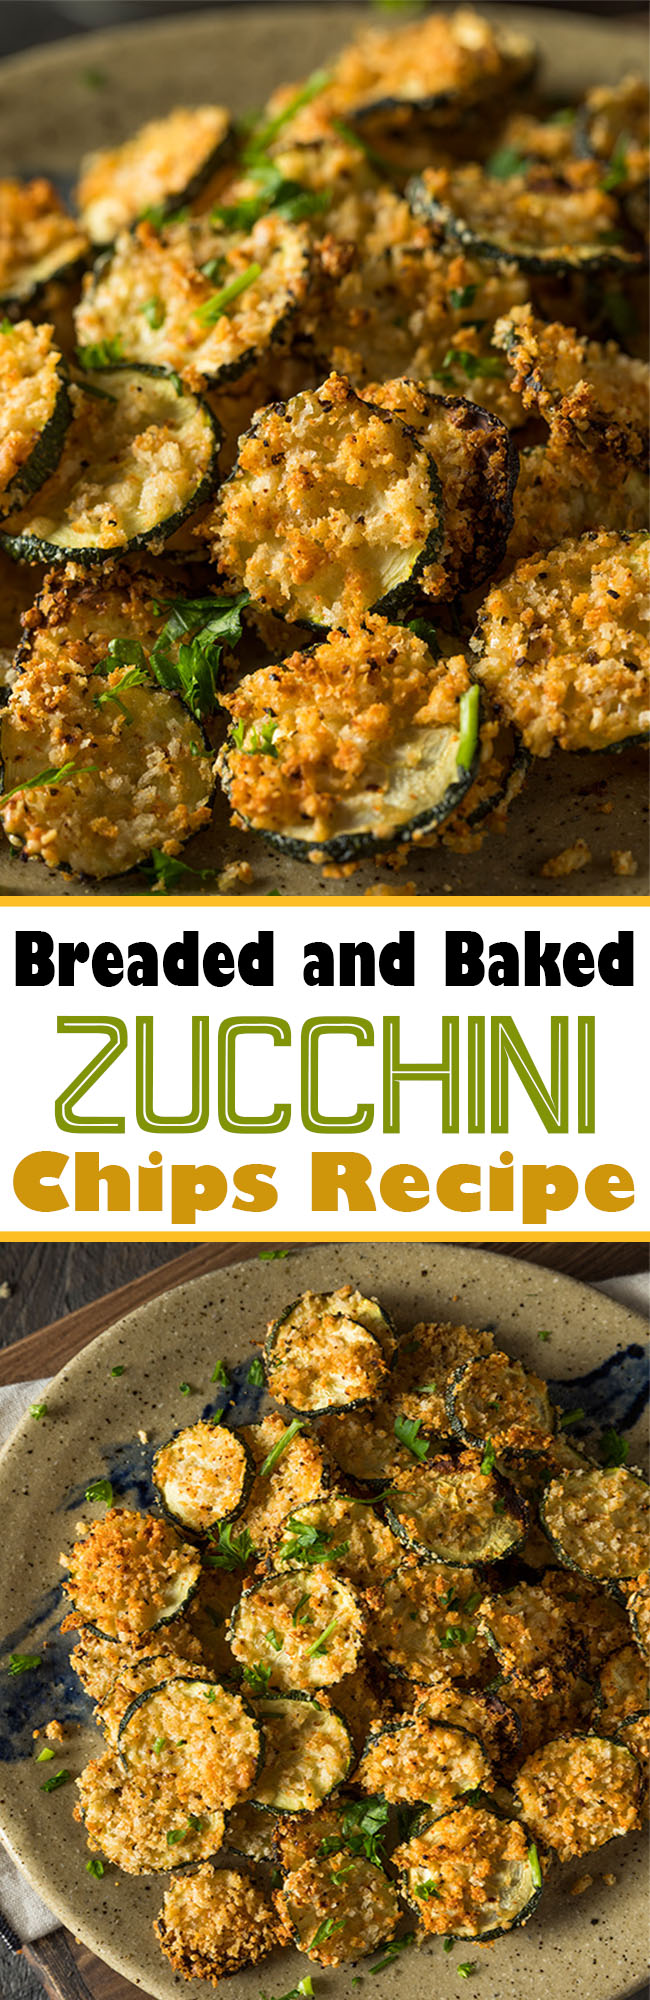 GRSAGRQGSFDSAF - Breaded and Baked Zucchini Chips Recipe